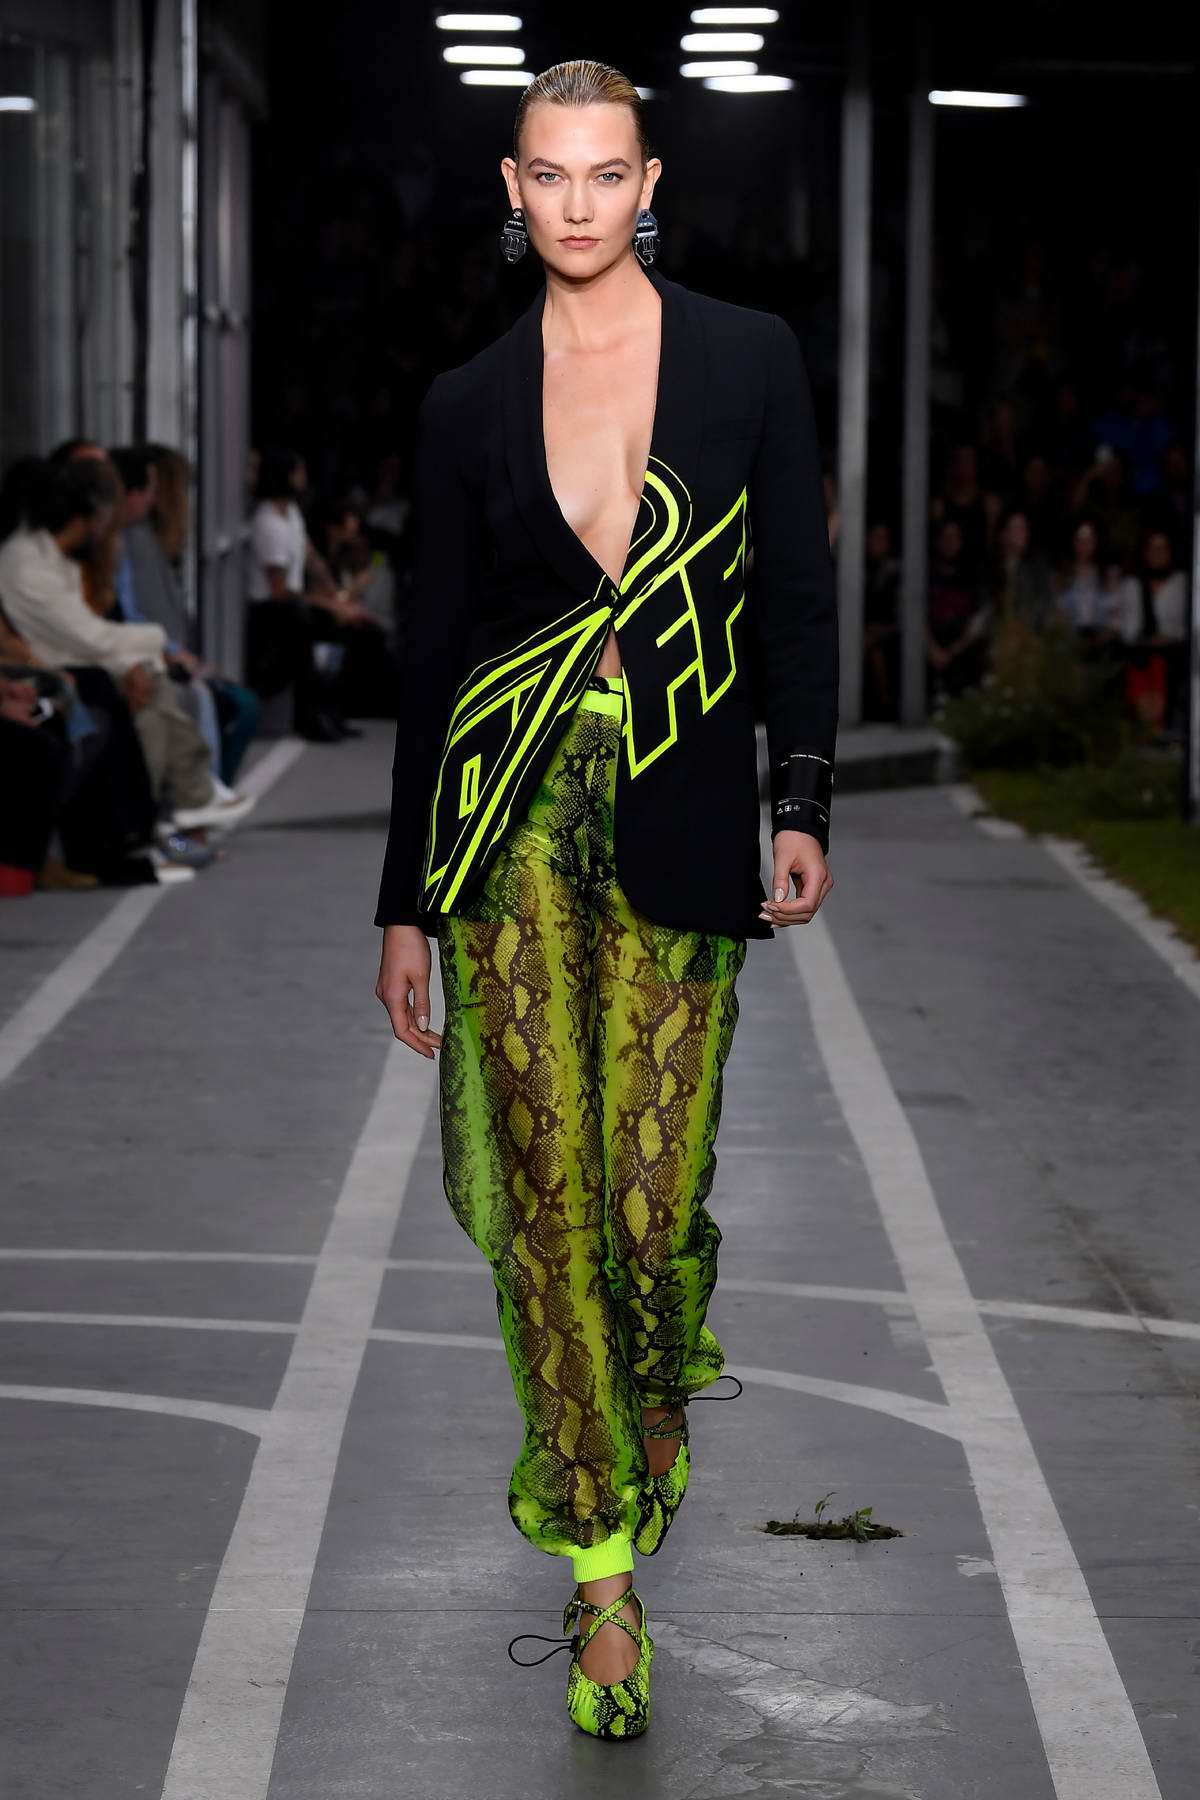 Karlie Kloss walks the runway for the Off-White Show during Paris Fashion Week in Paris, France